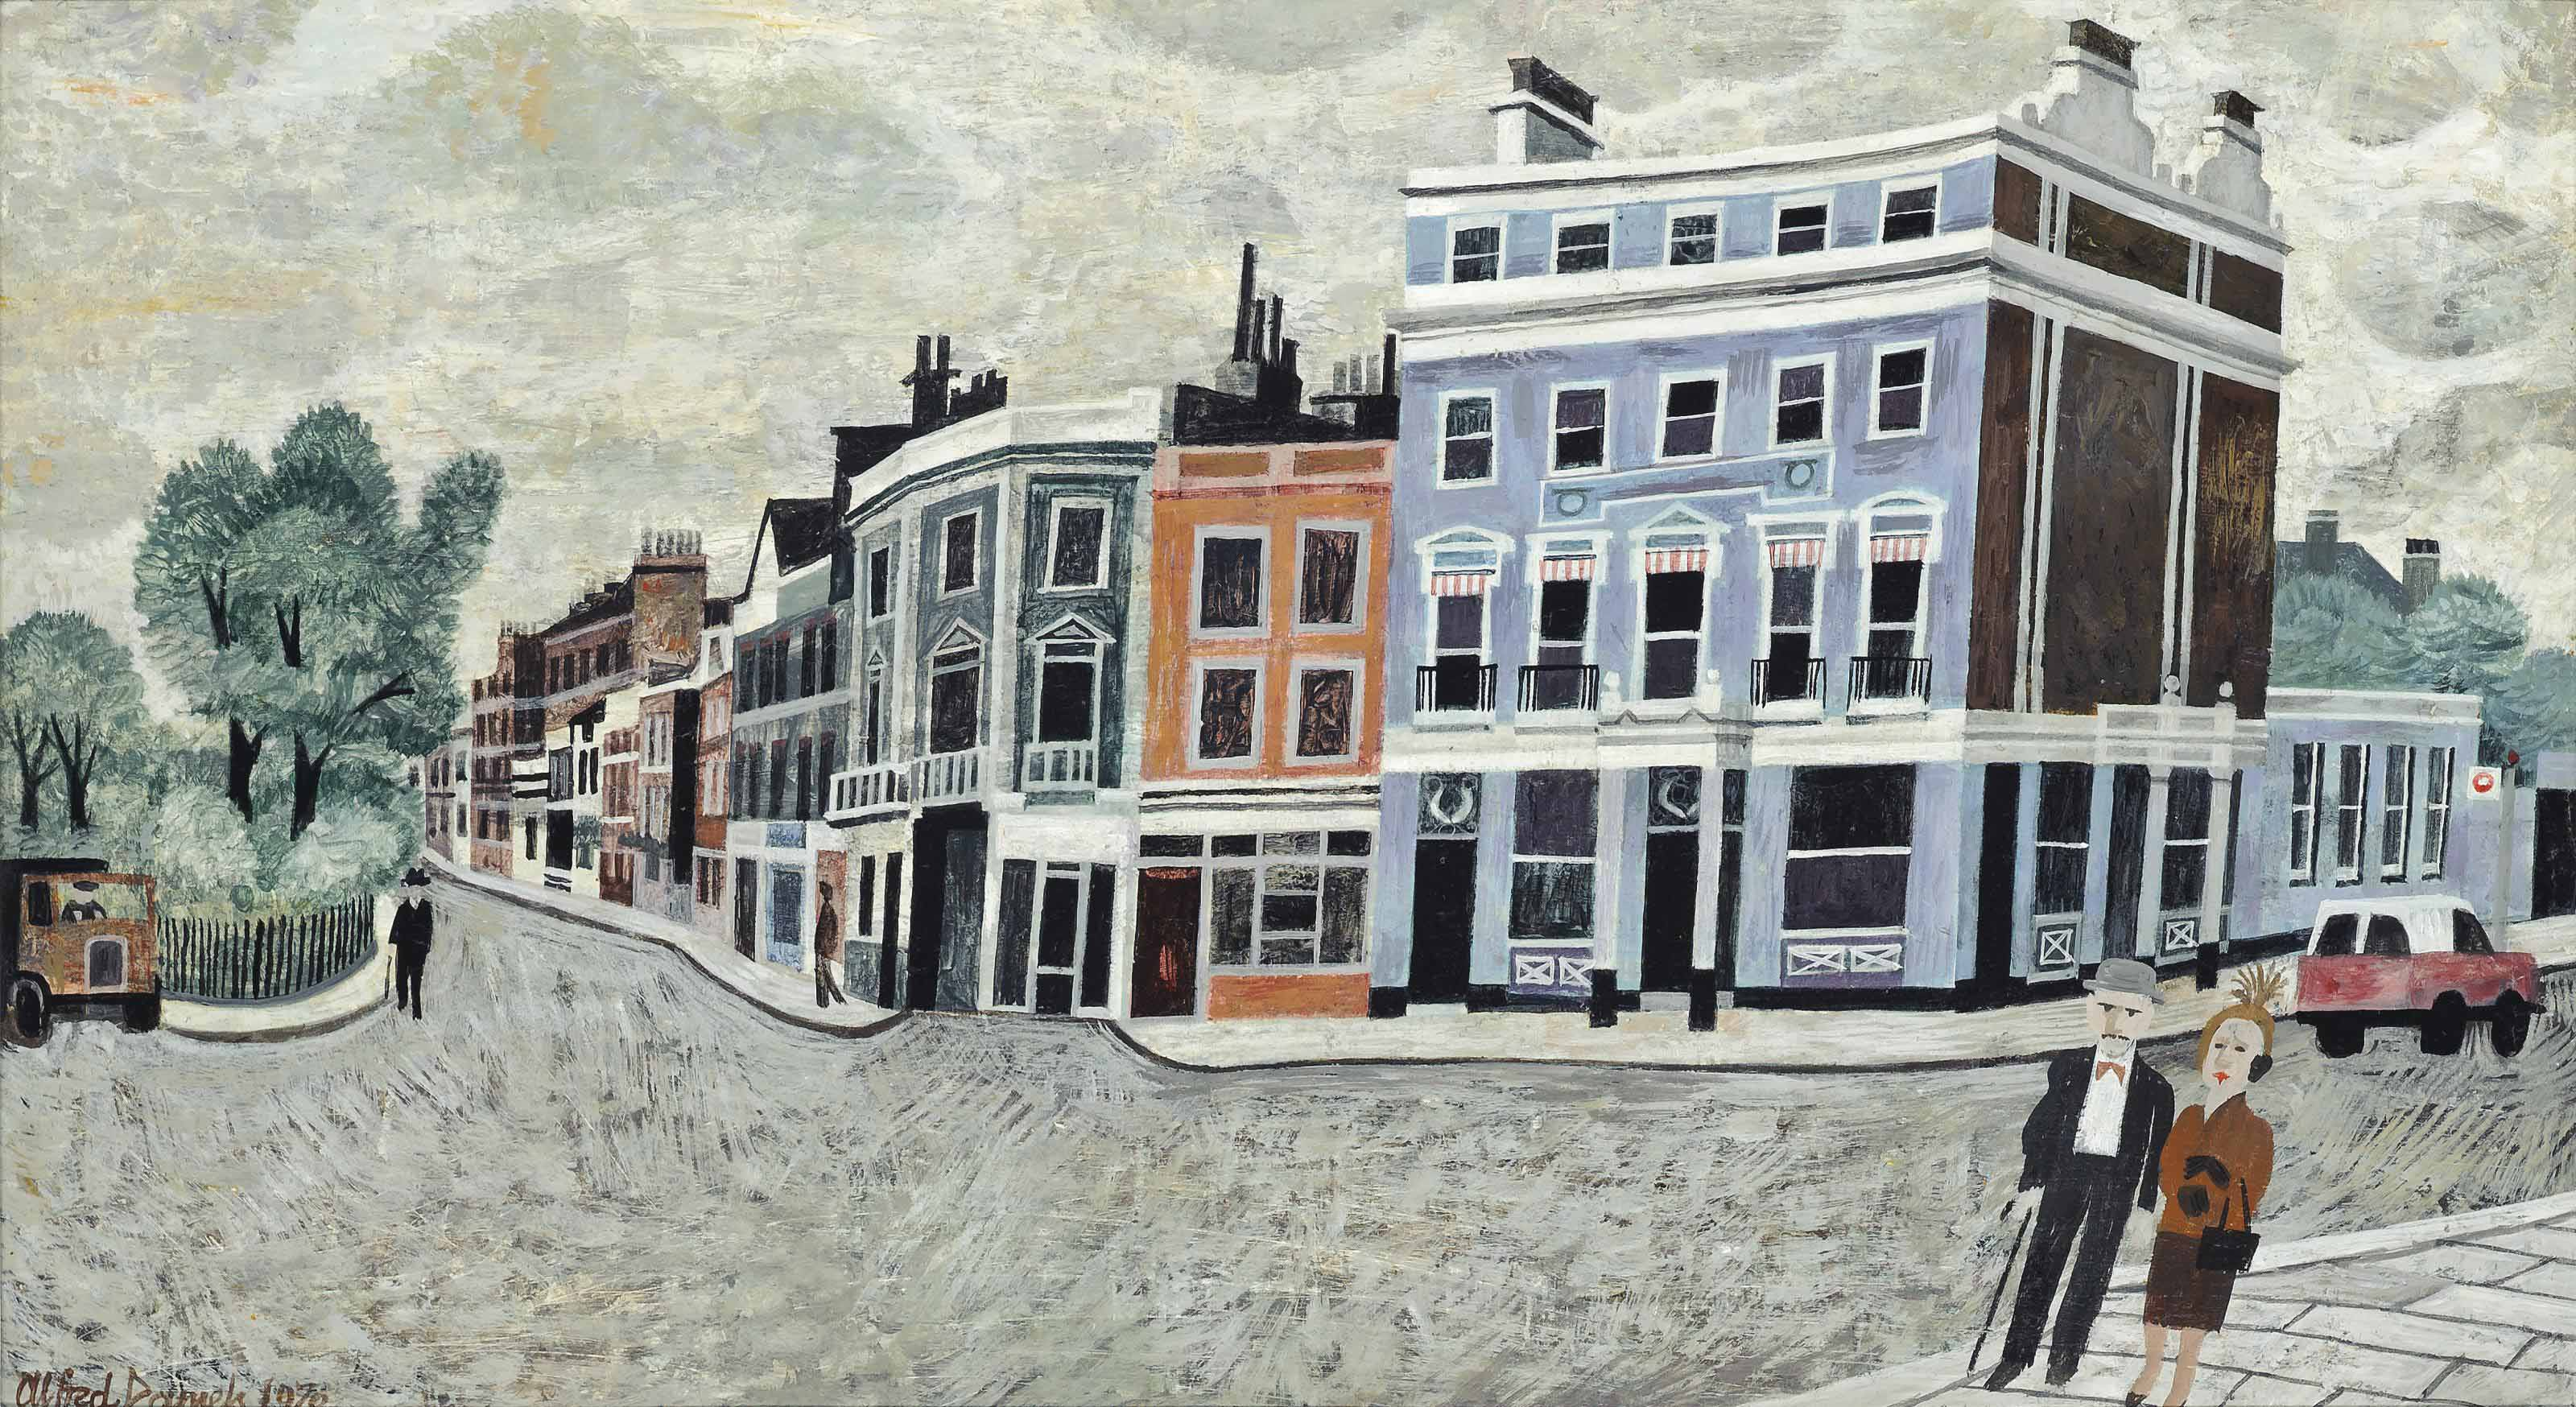 The Old Pier Hotel, Chelsea